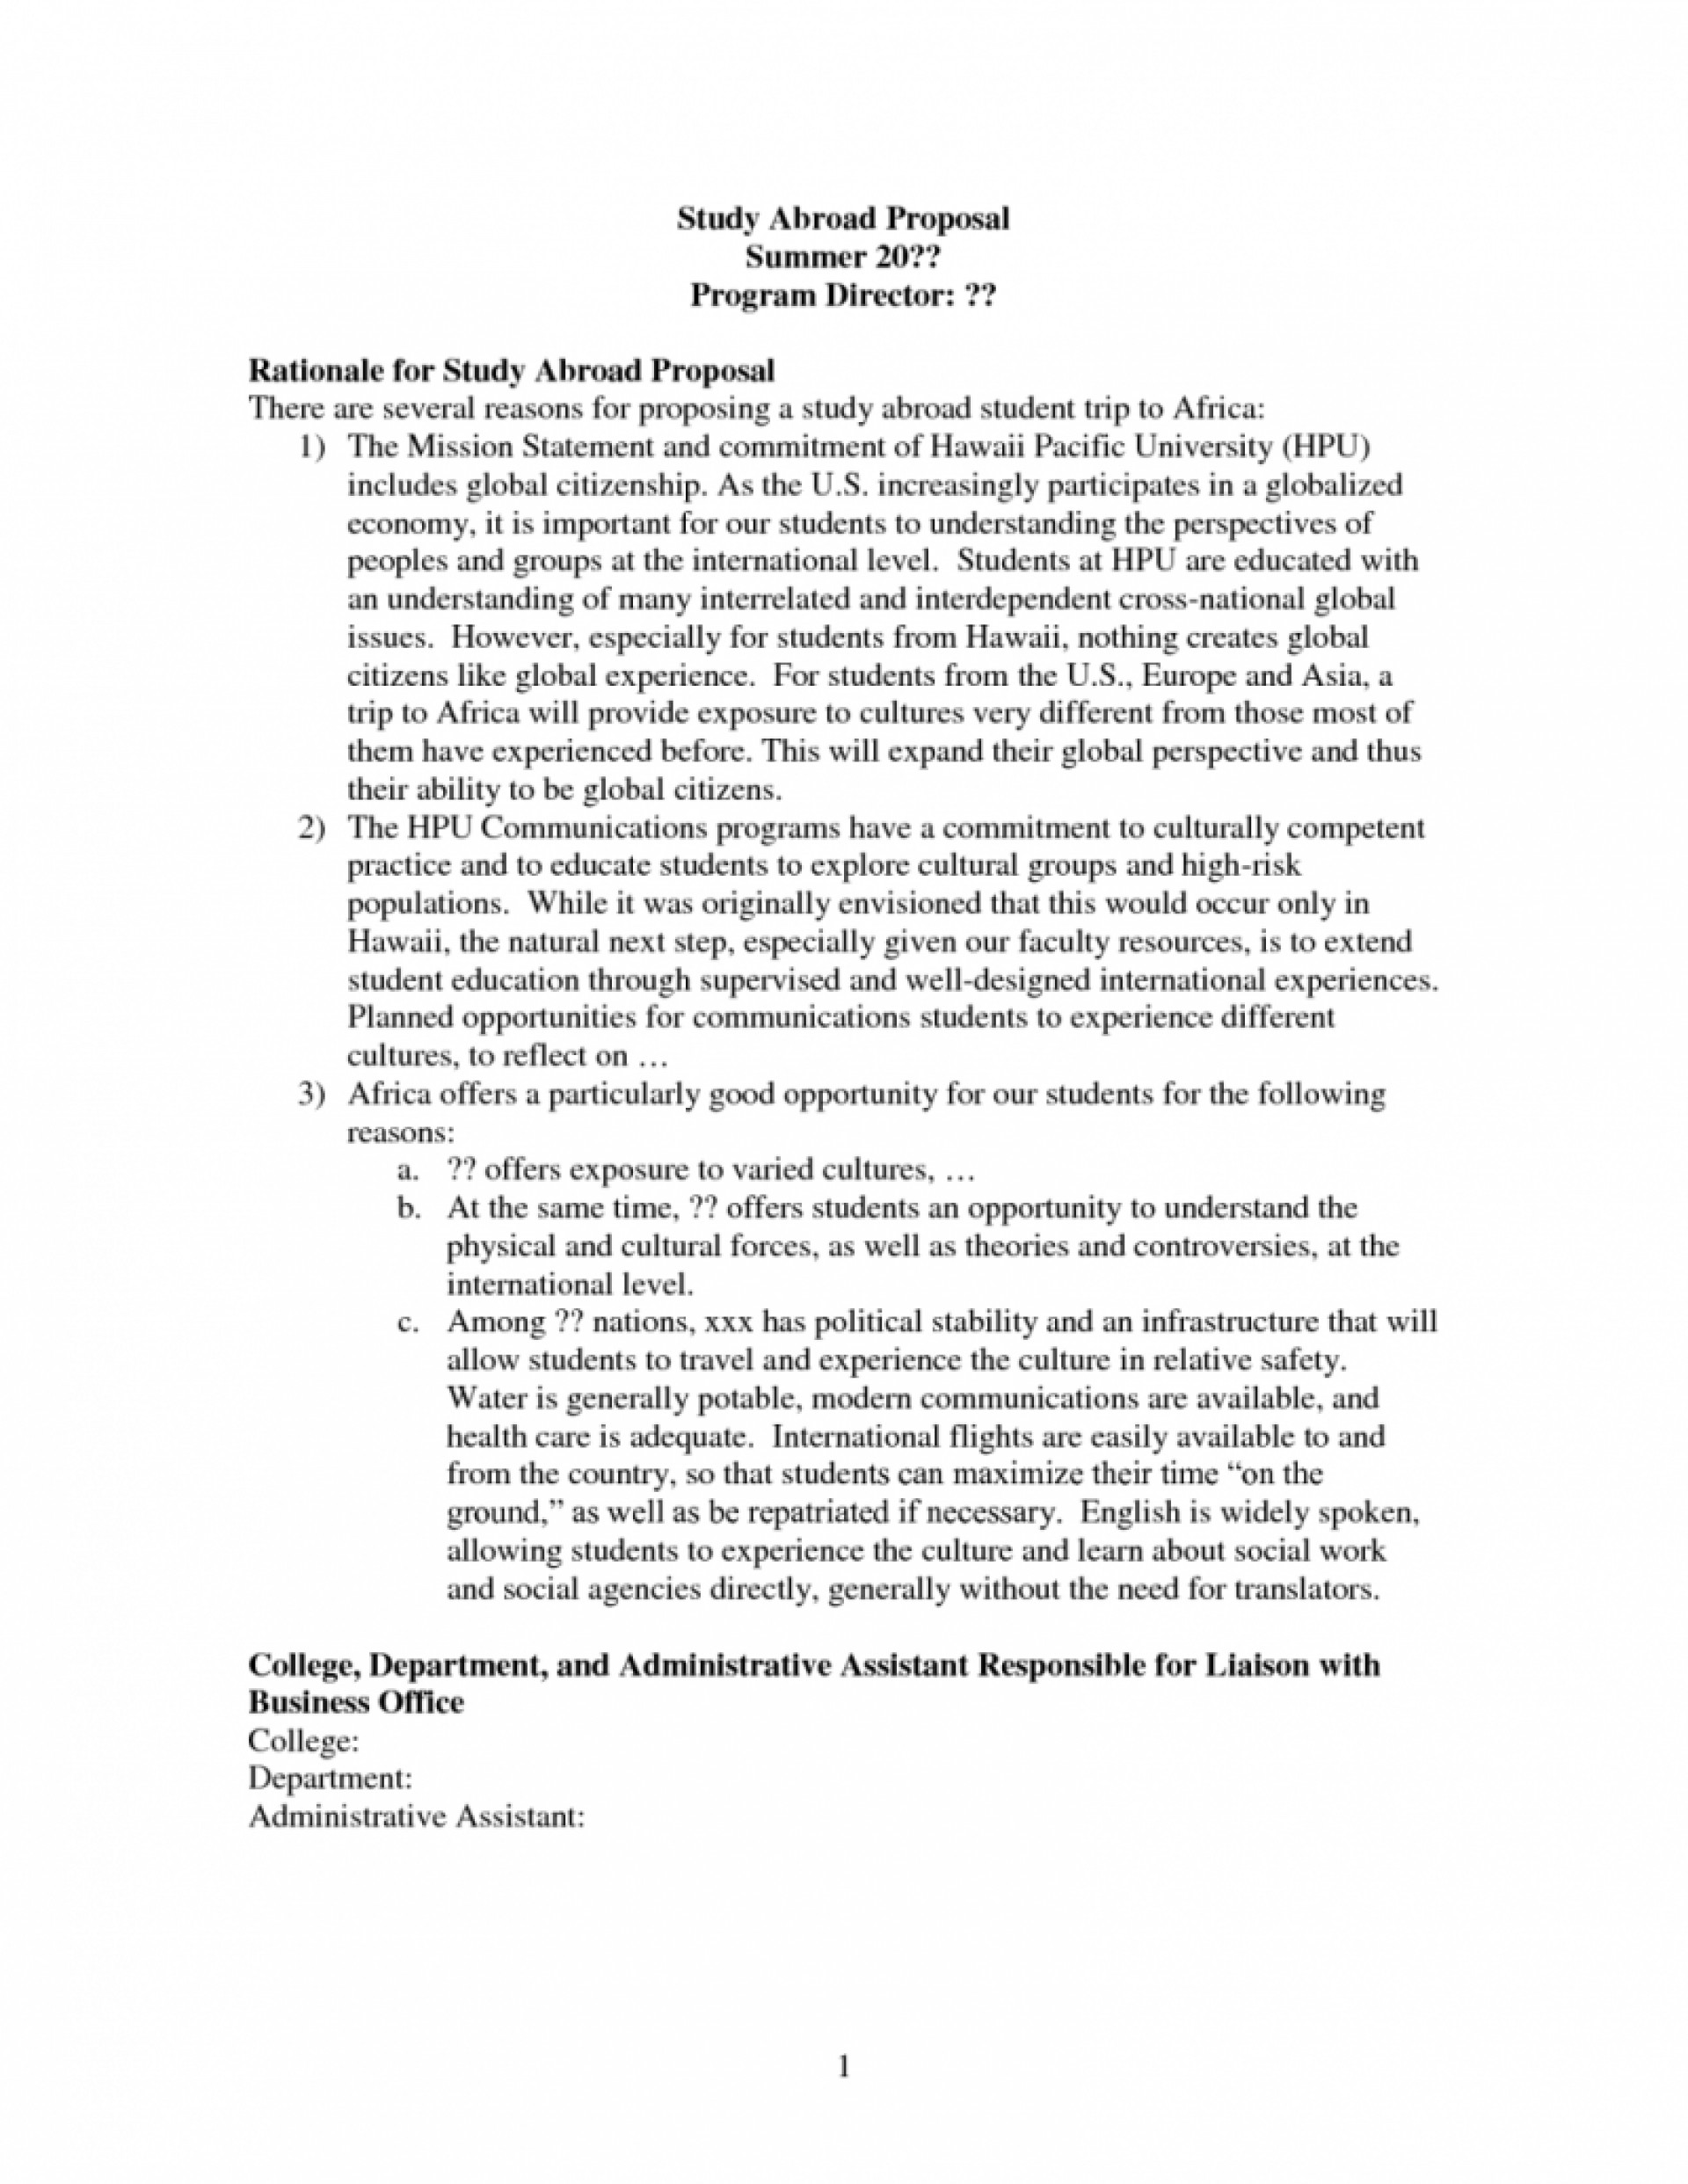 021 Study Abroad Essays Template Abroadrship Best Solutions Of Cv Psychology Graduate School Sample 791x1024 Write 1024x1325resize8002c1035 Amazing Essay Examples Why I Want To 1920